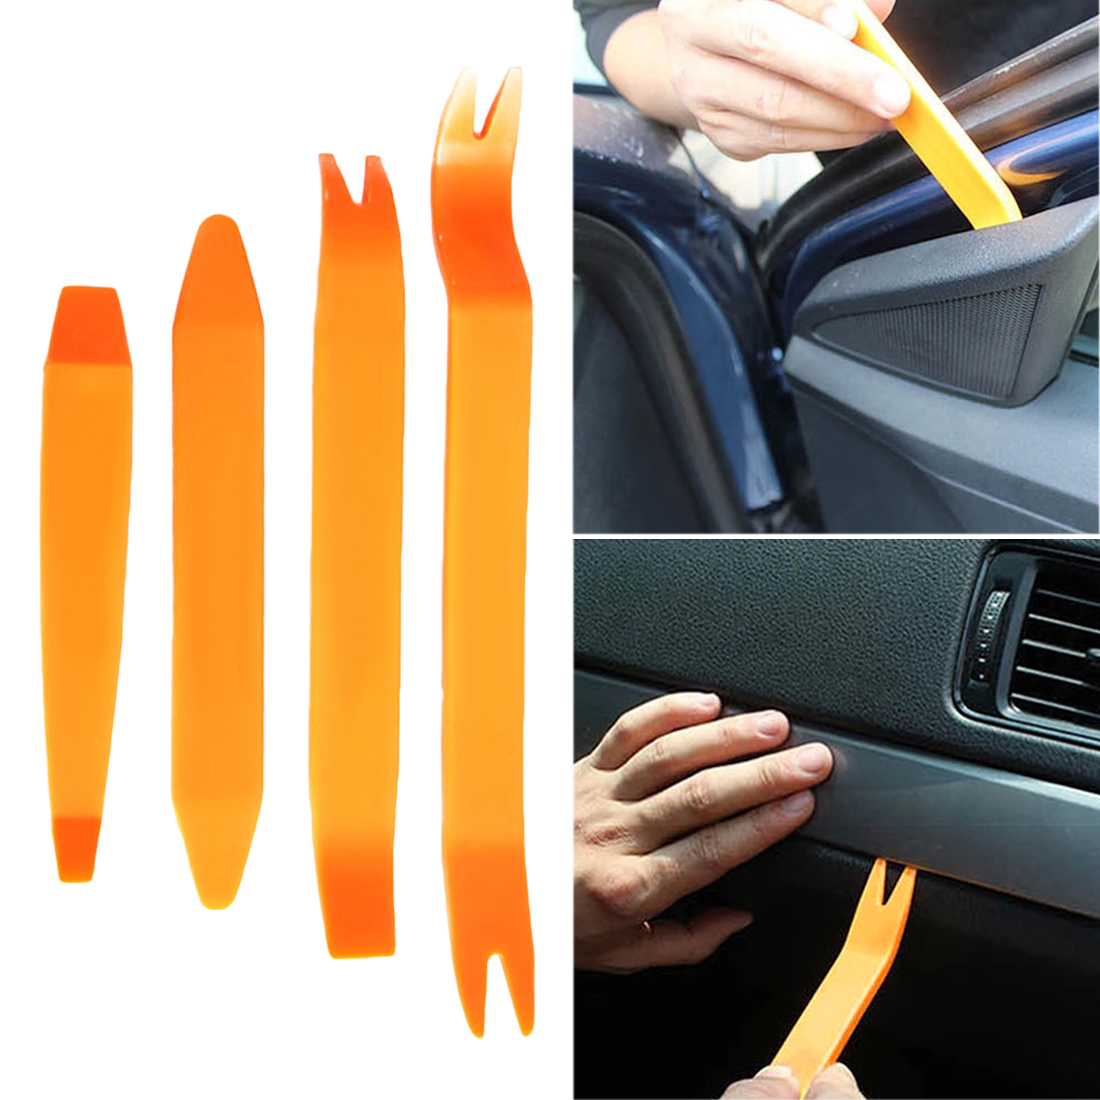 Dewtreetali Popular Car Accessories Car Audio Disassembly Tool 4 Sets Of Hot Wire Products Car Tools Utilities Audio Repair New